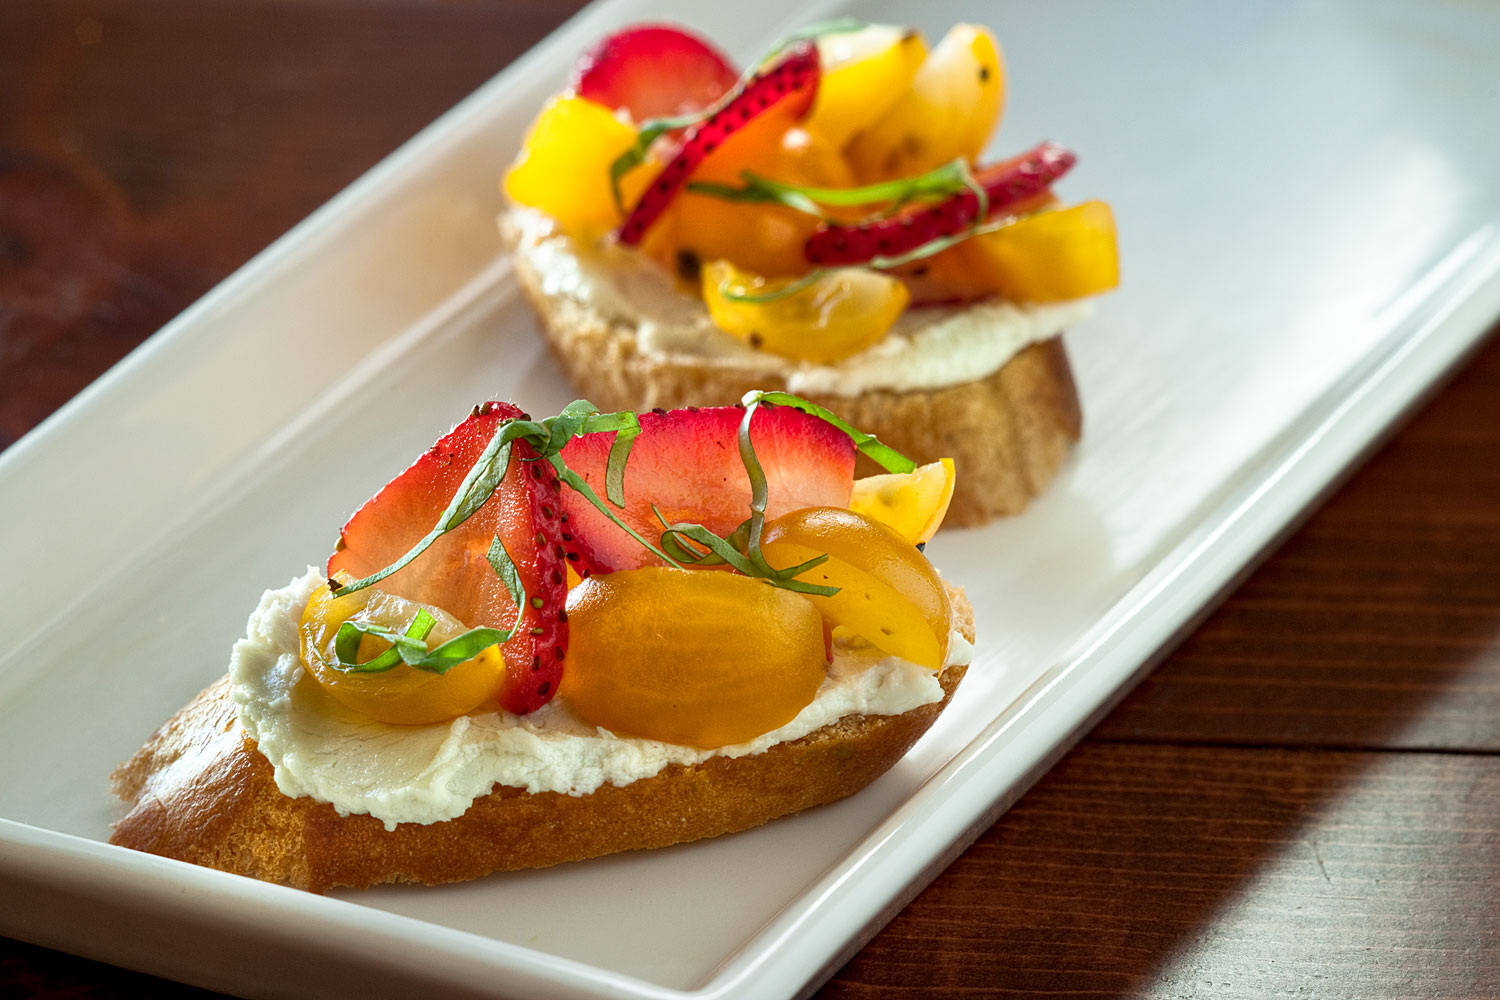 Fruited Bruschetta with Goat Cheese